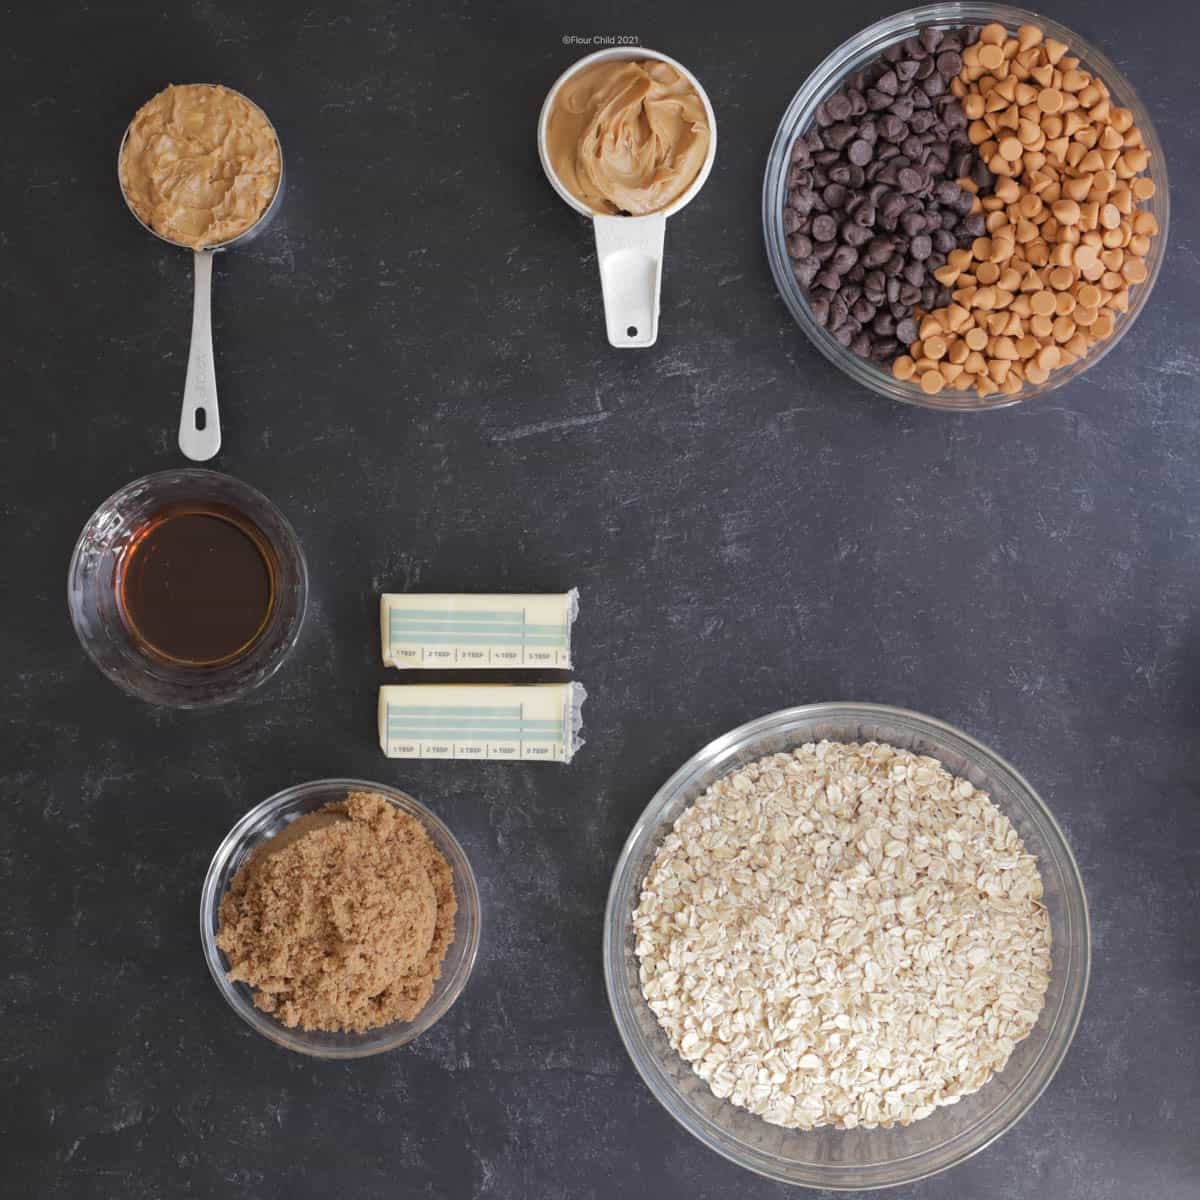 Ingredients for peanut butter oatmeal bars